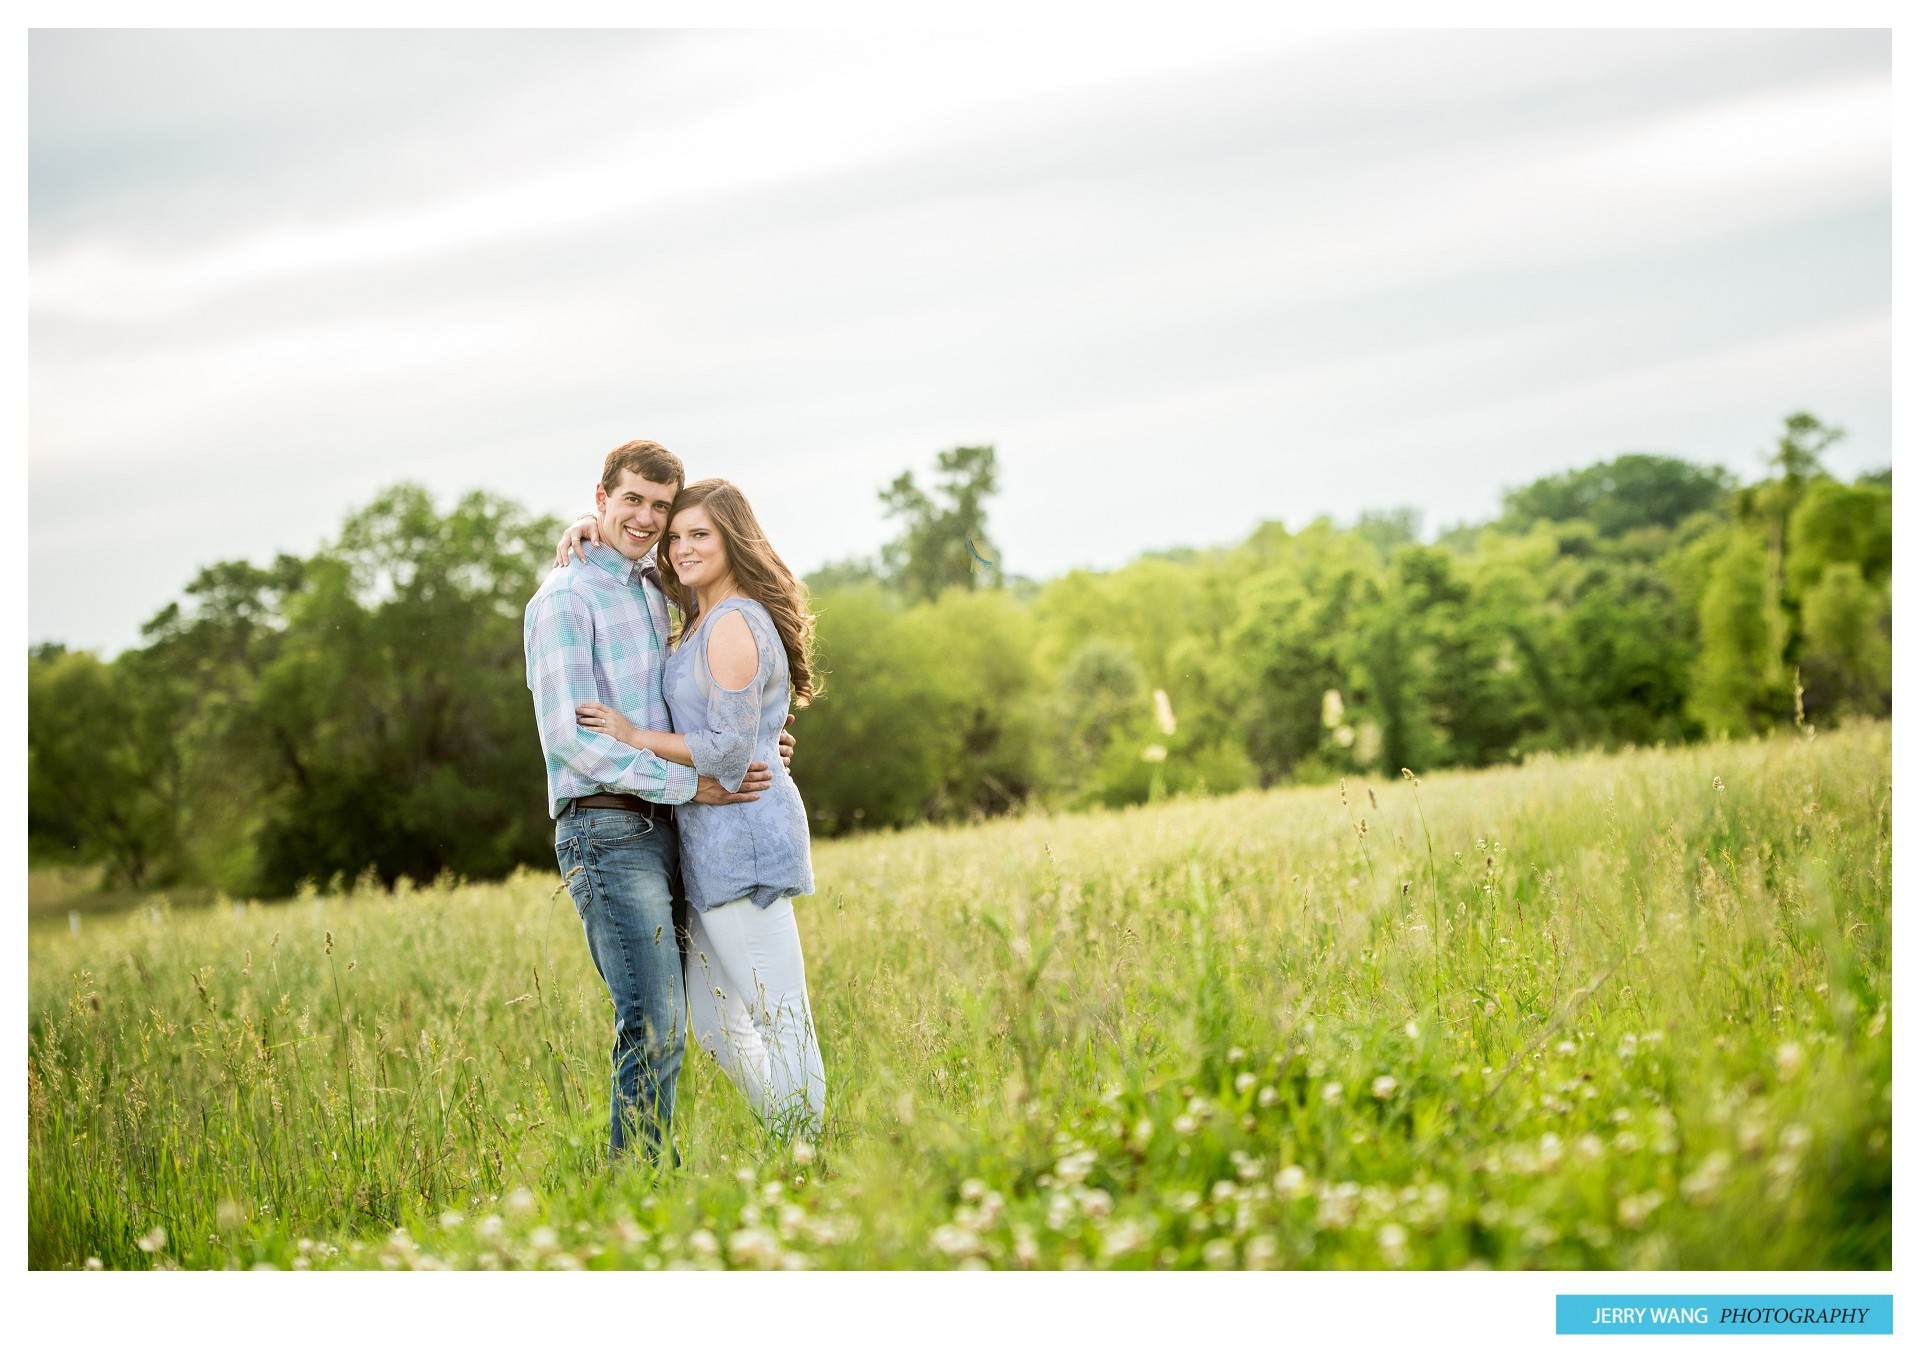 S&B_Spring_Hills_Kansas_Hickory_Creek_Engagement_Session 10